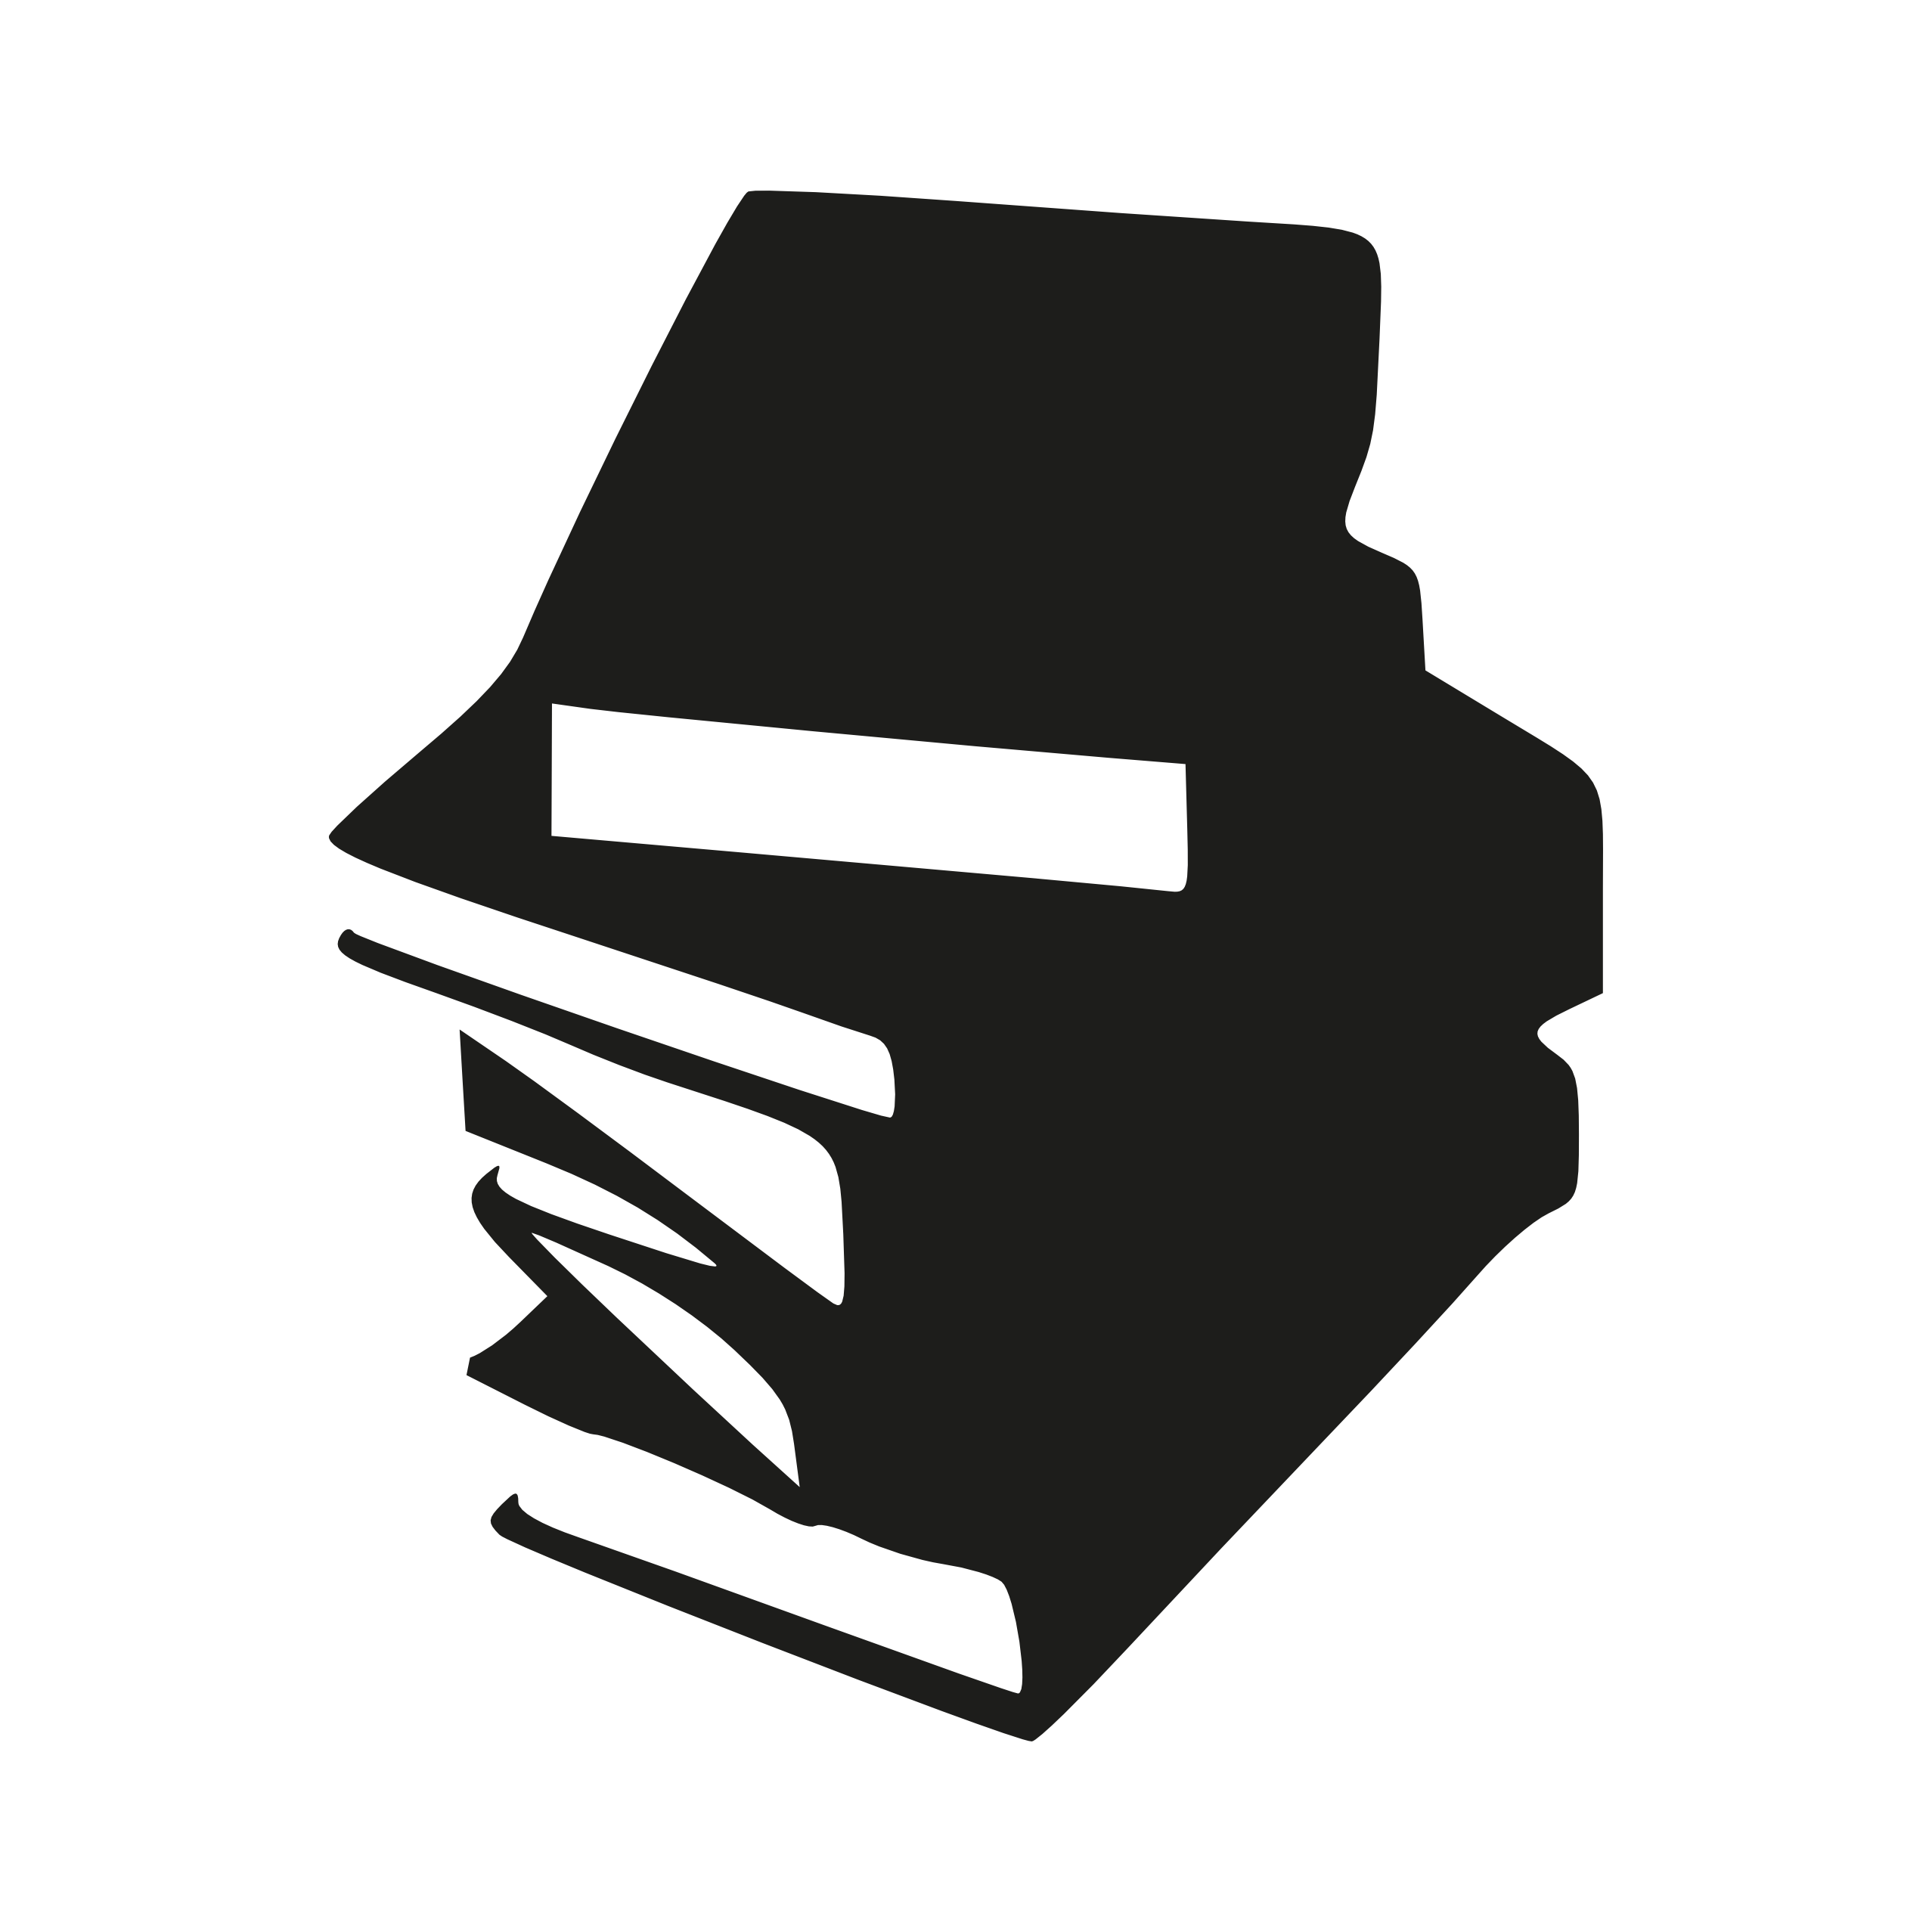 Paper clipart paper pile. Stack of books black